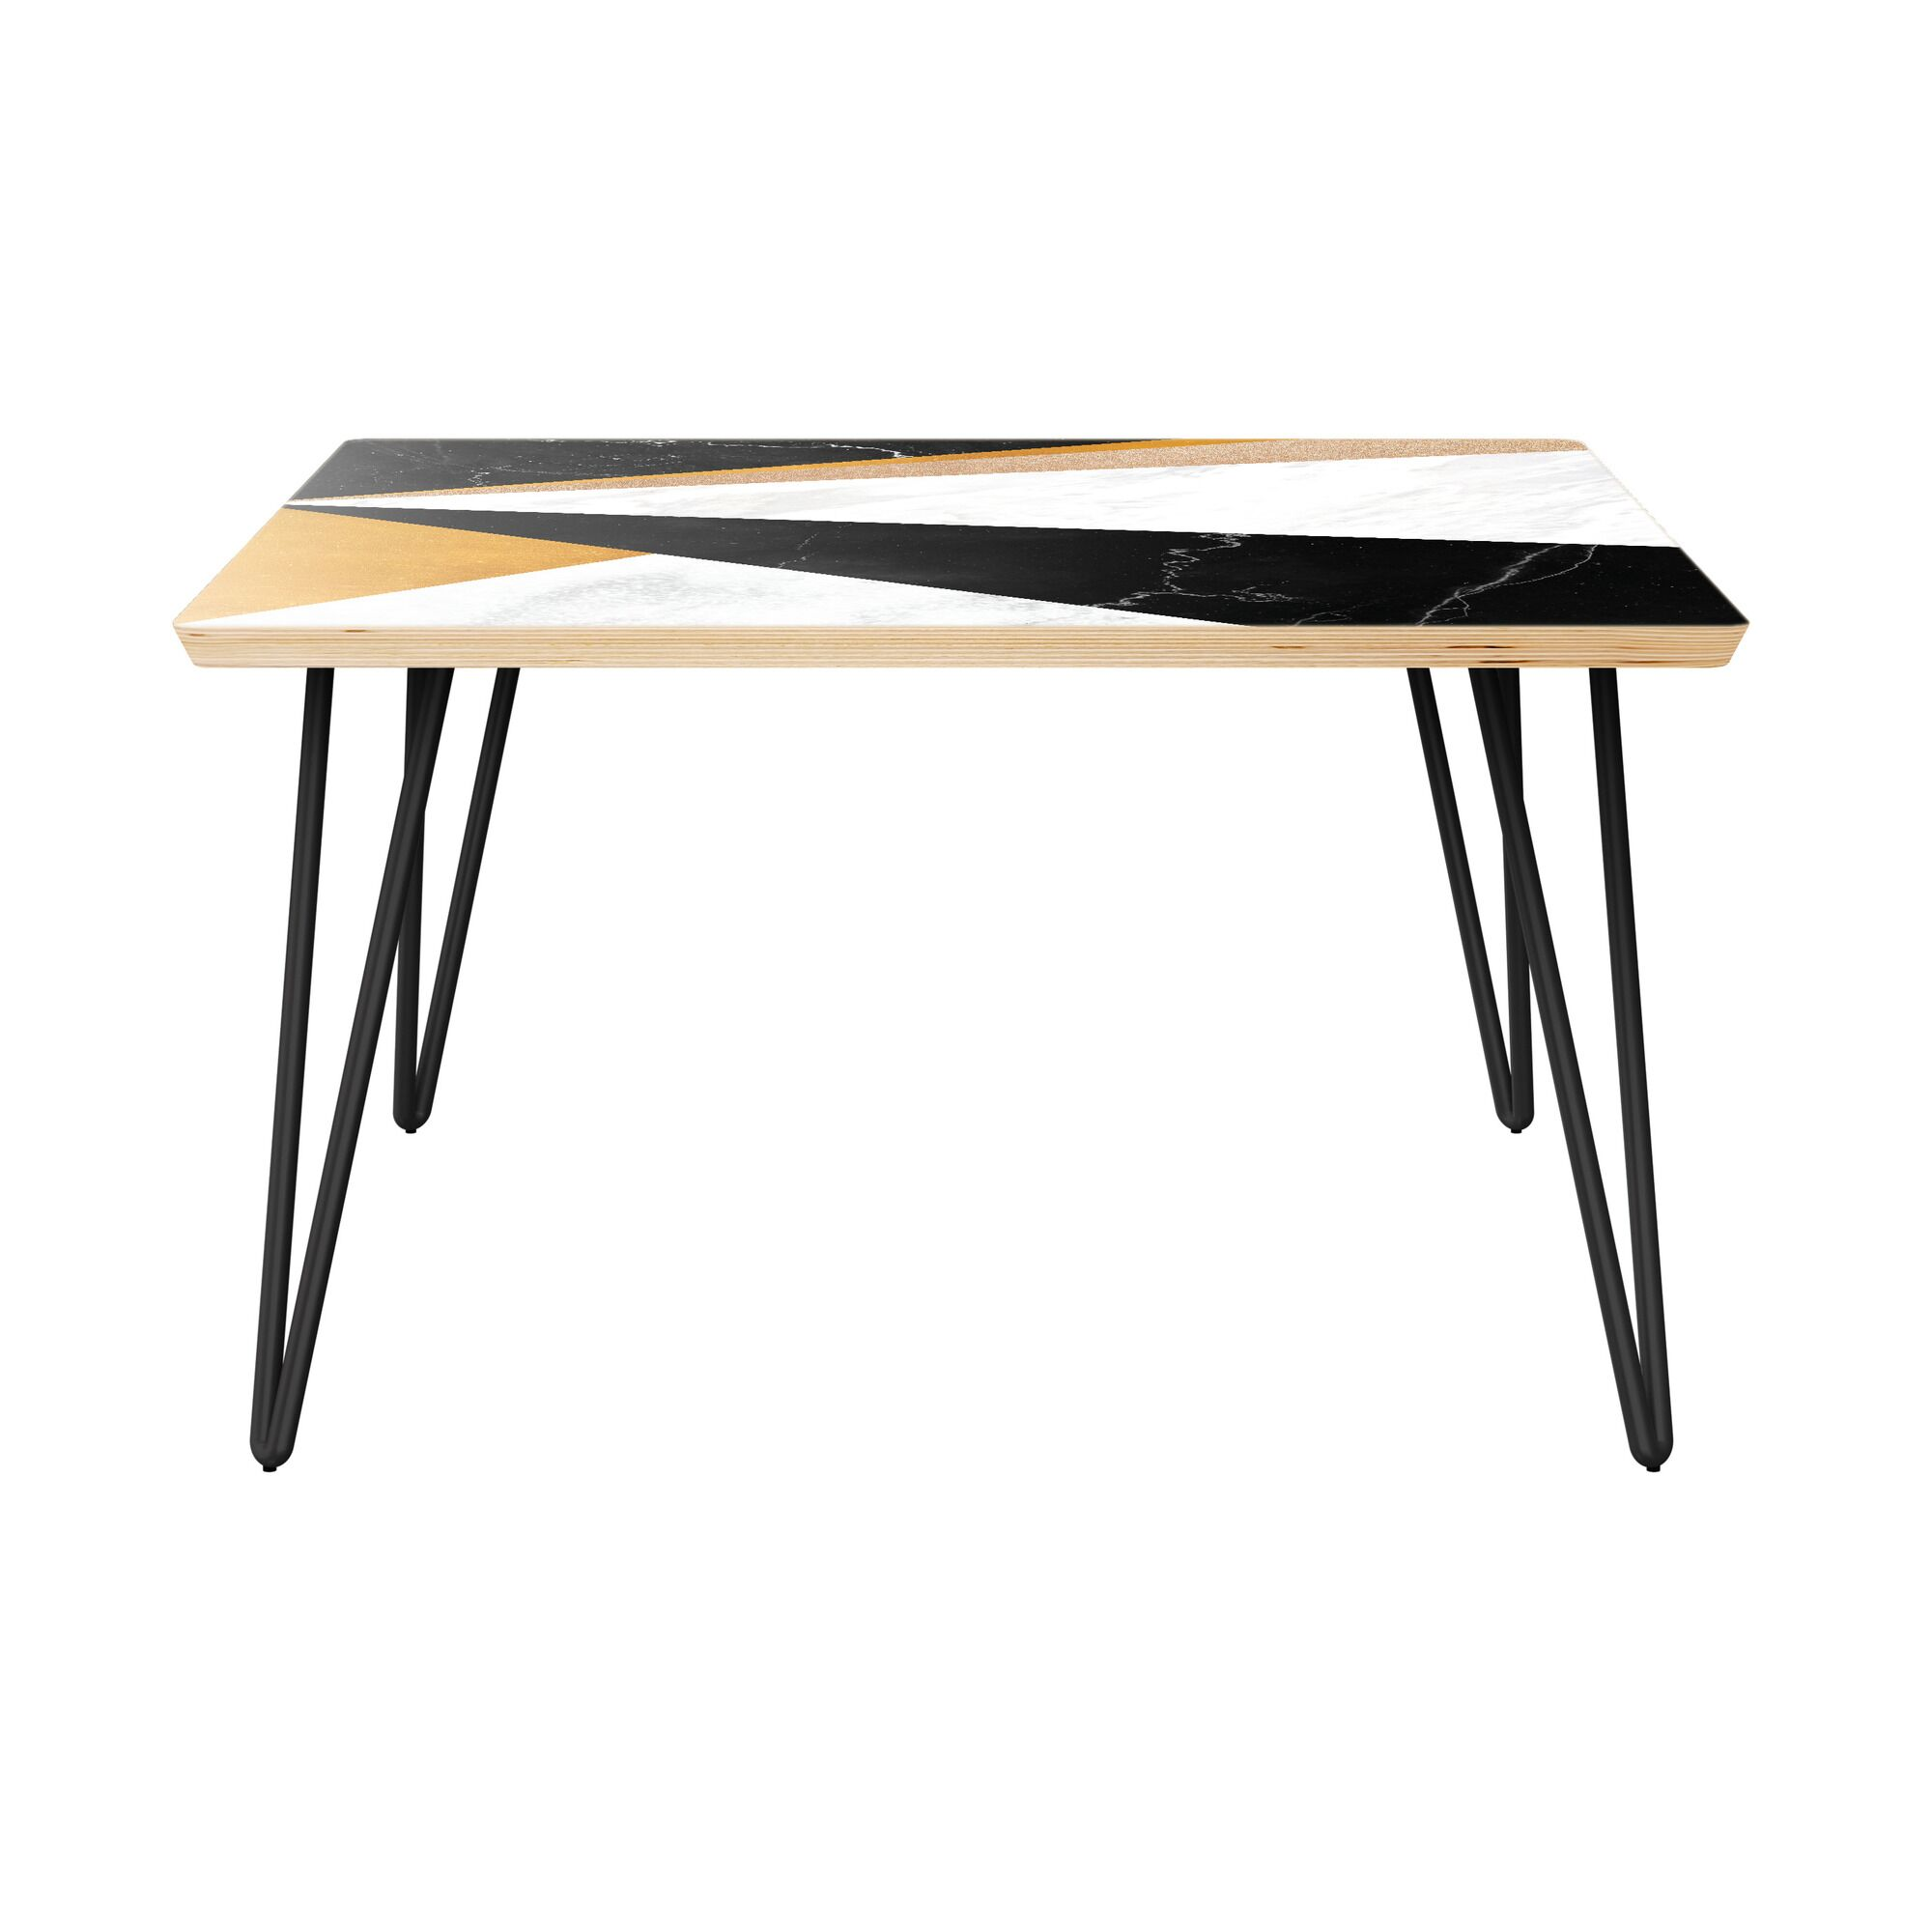 Goudy Coffee Table Table Top Color: Natural, Table Base Color: Black